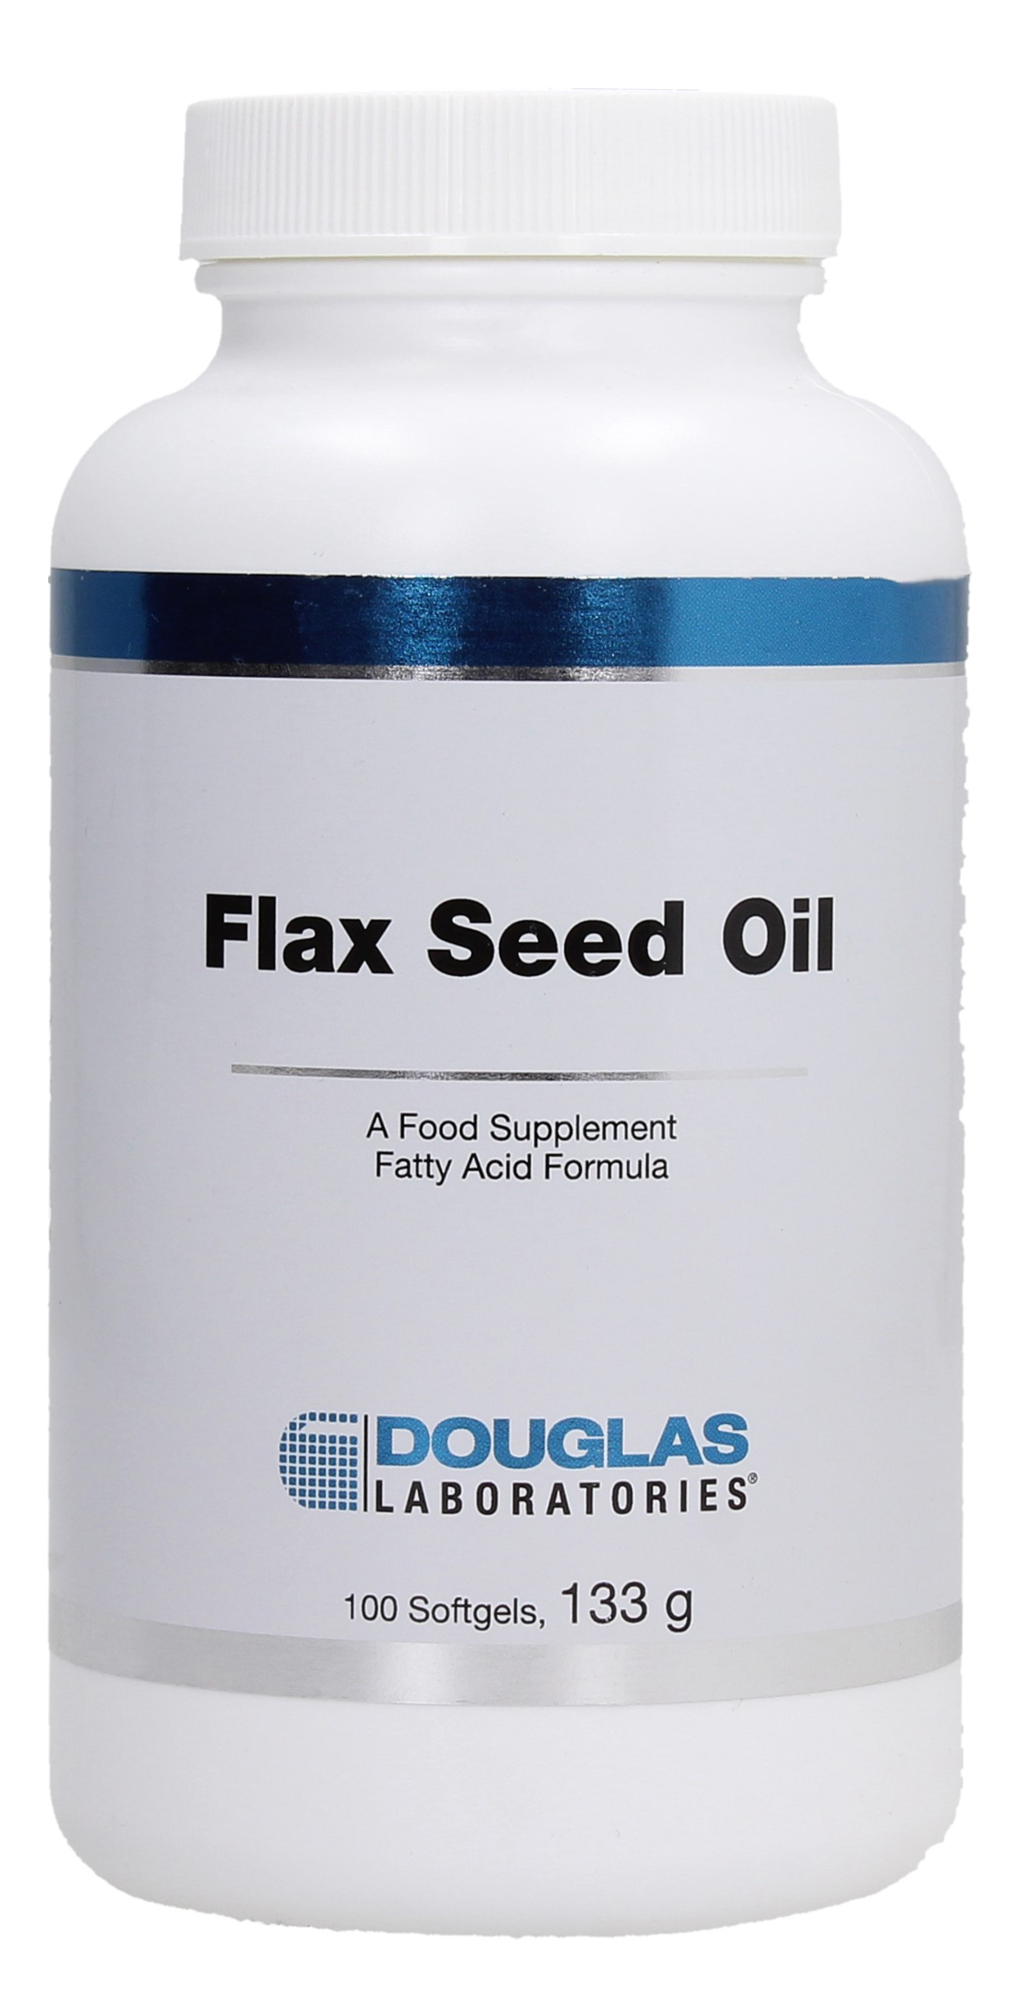 Douglas Laboratories Organic Flax Seed Oil - 100 Softgels von Douglas Laboratories